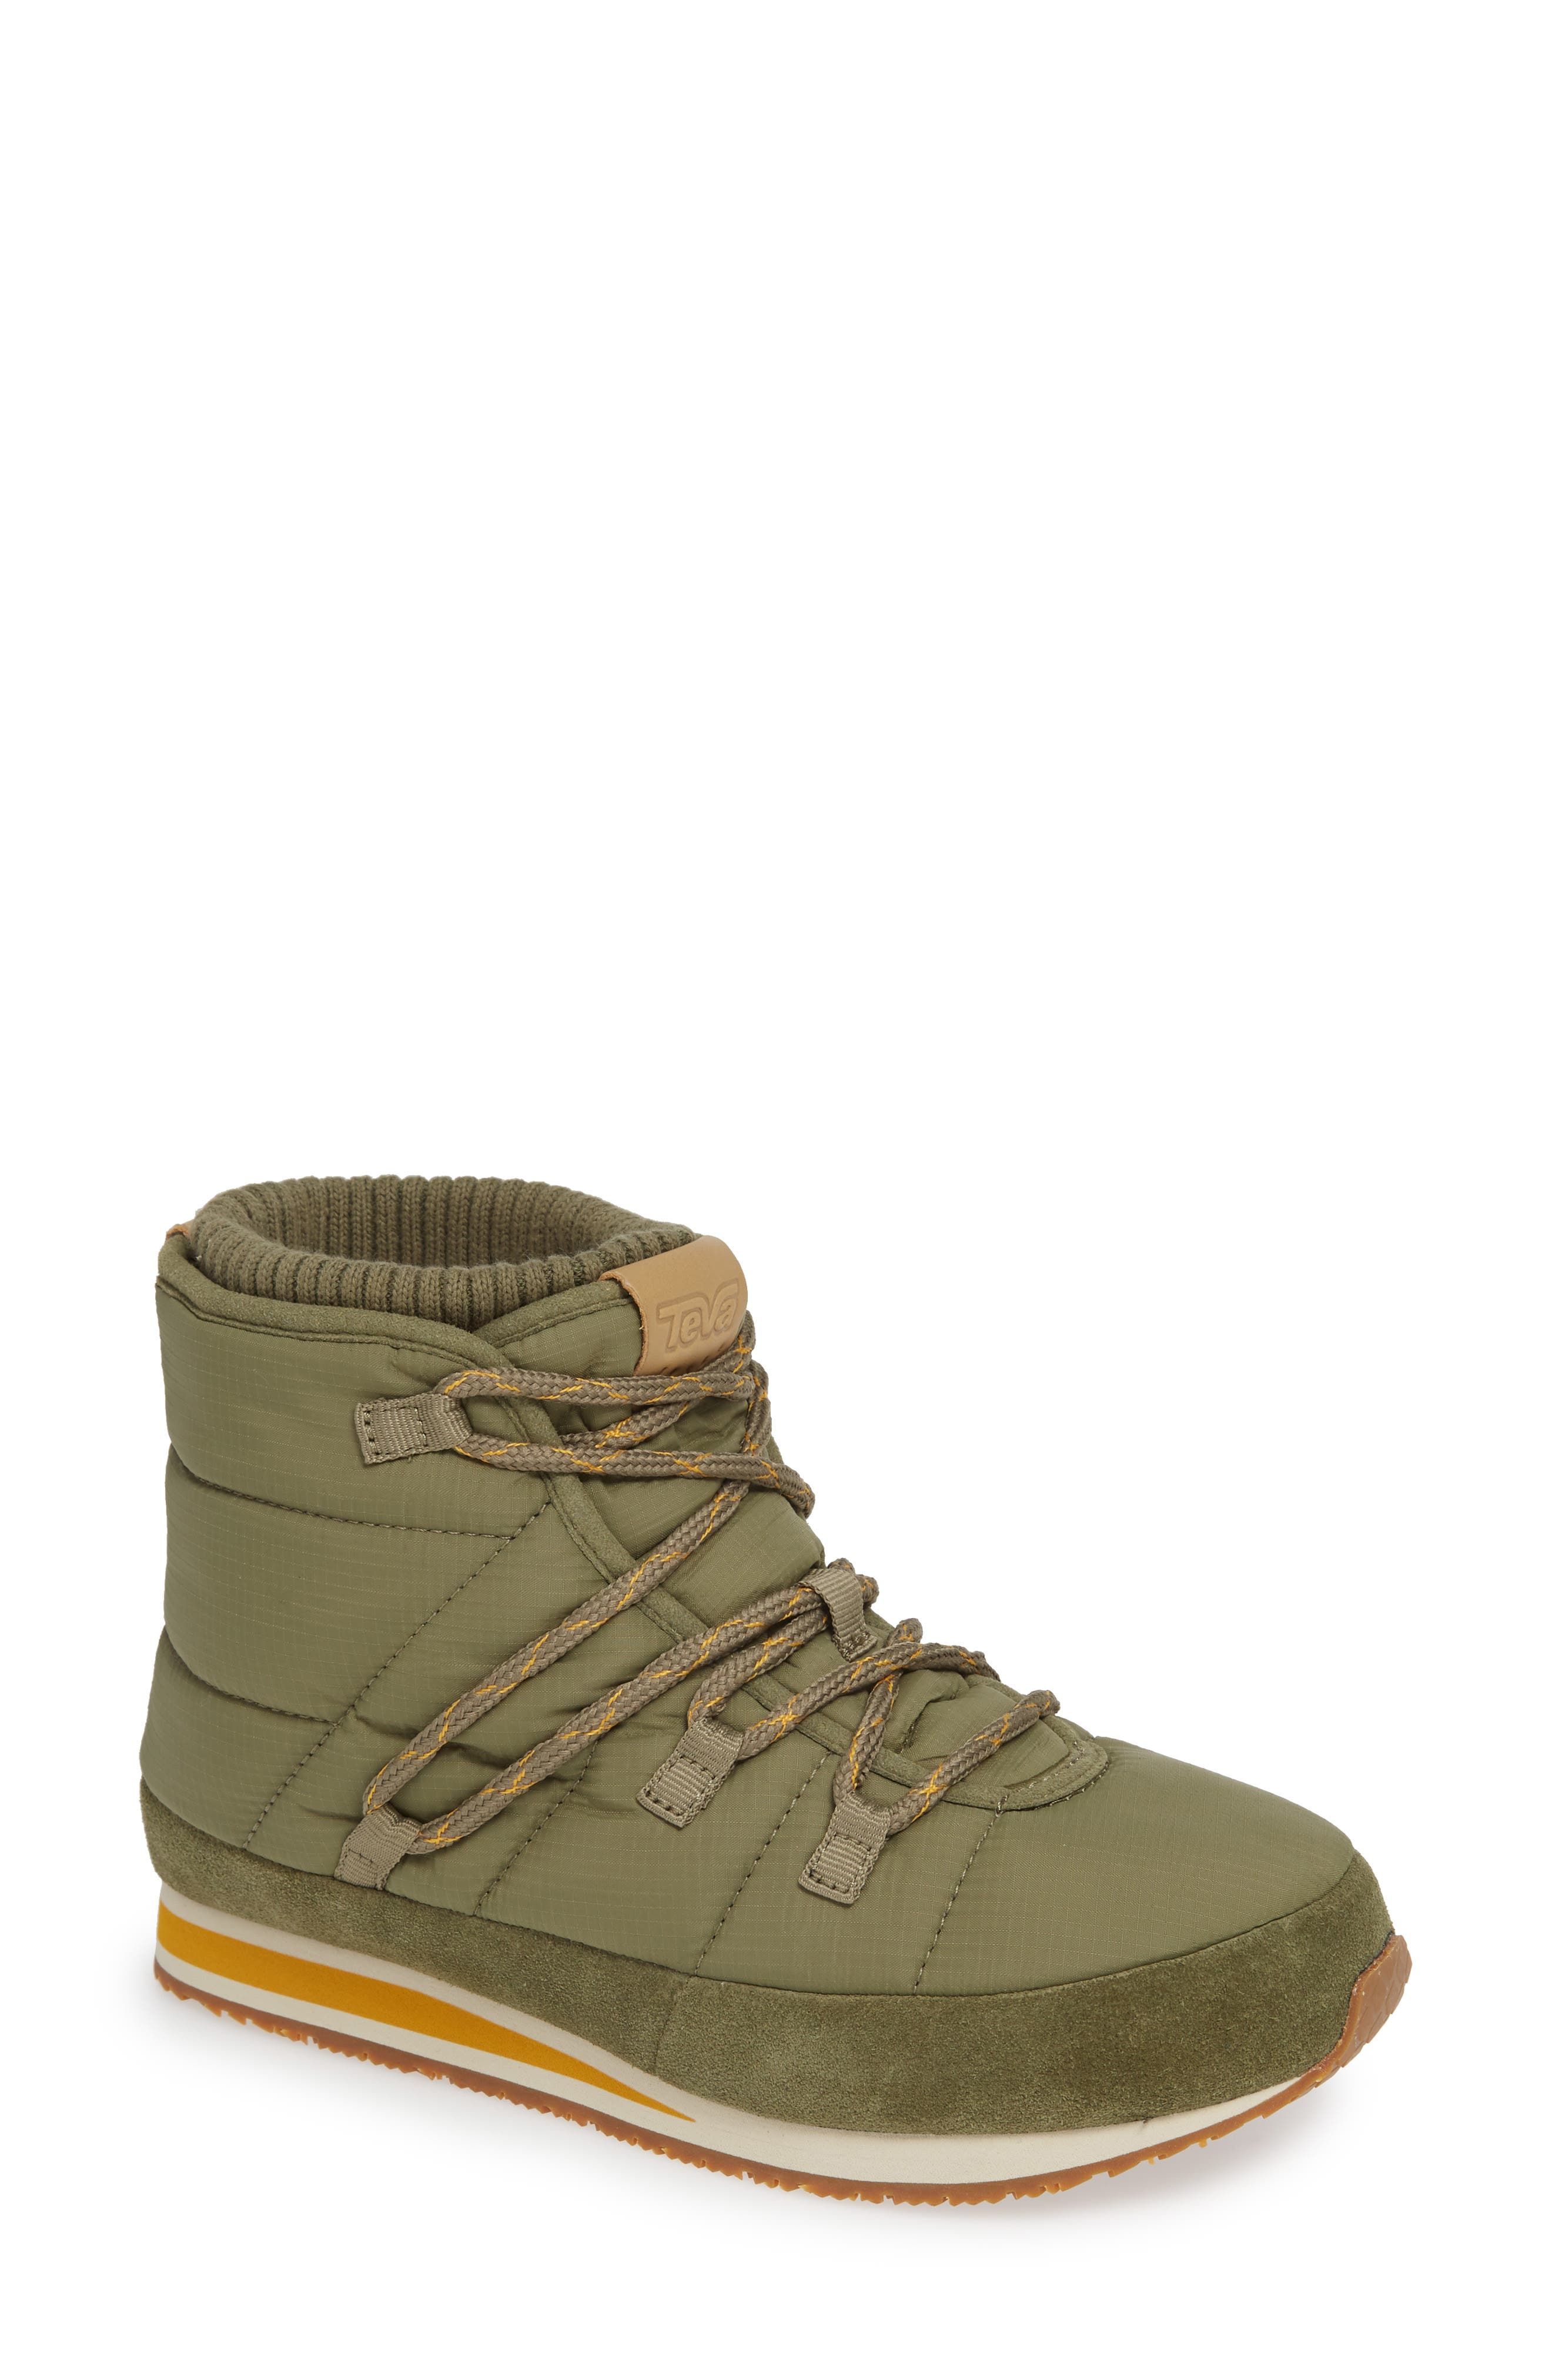 TEVA, Ember Lace-Up Winter Bootie, Main thumbnail 1, color, BURNT OLIVE FABRIC